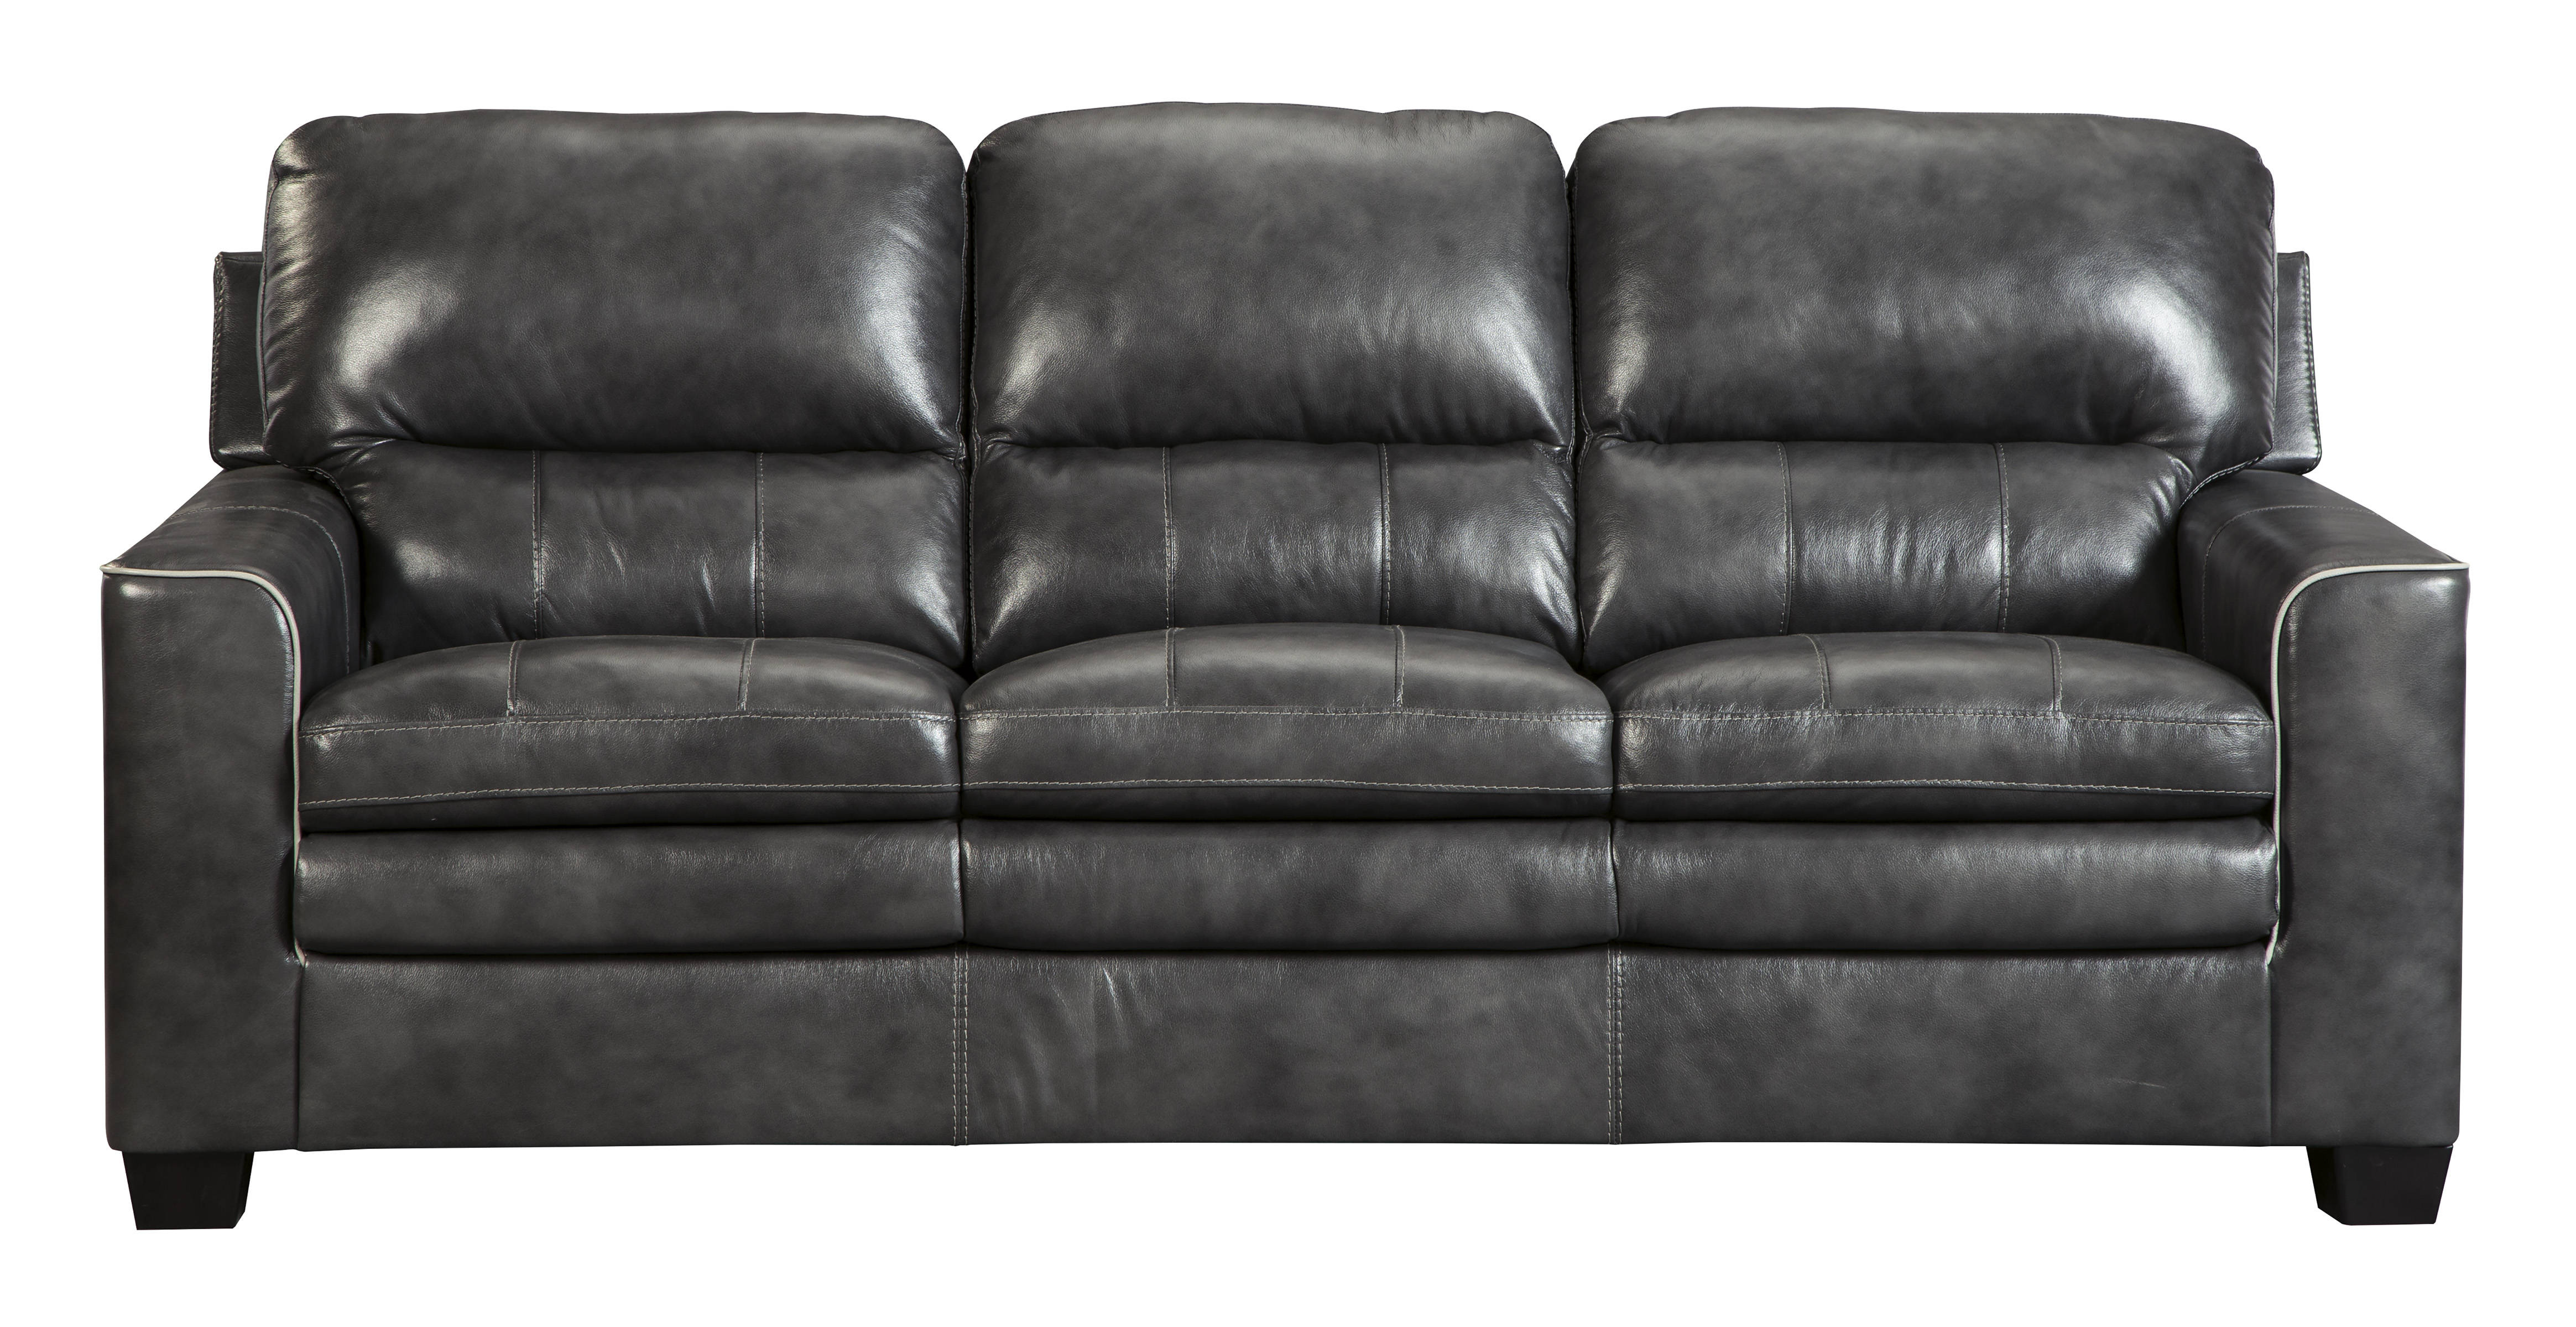 Superb Ashley Furniture Gleason Charcoal Sofa The Classy Home Download Free Architecture Designs Scobabritishbridgeorg